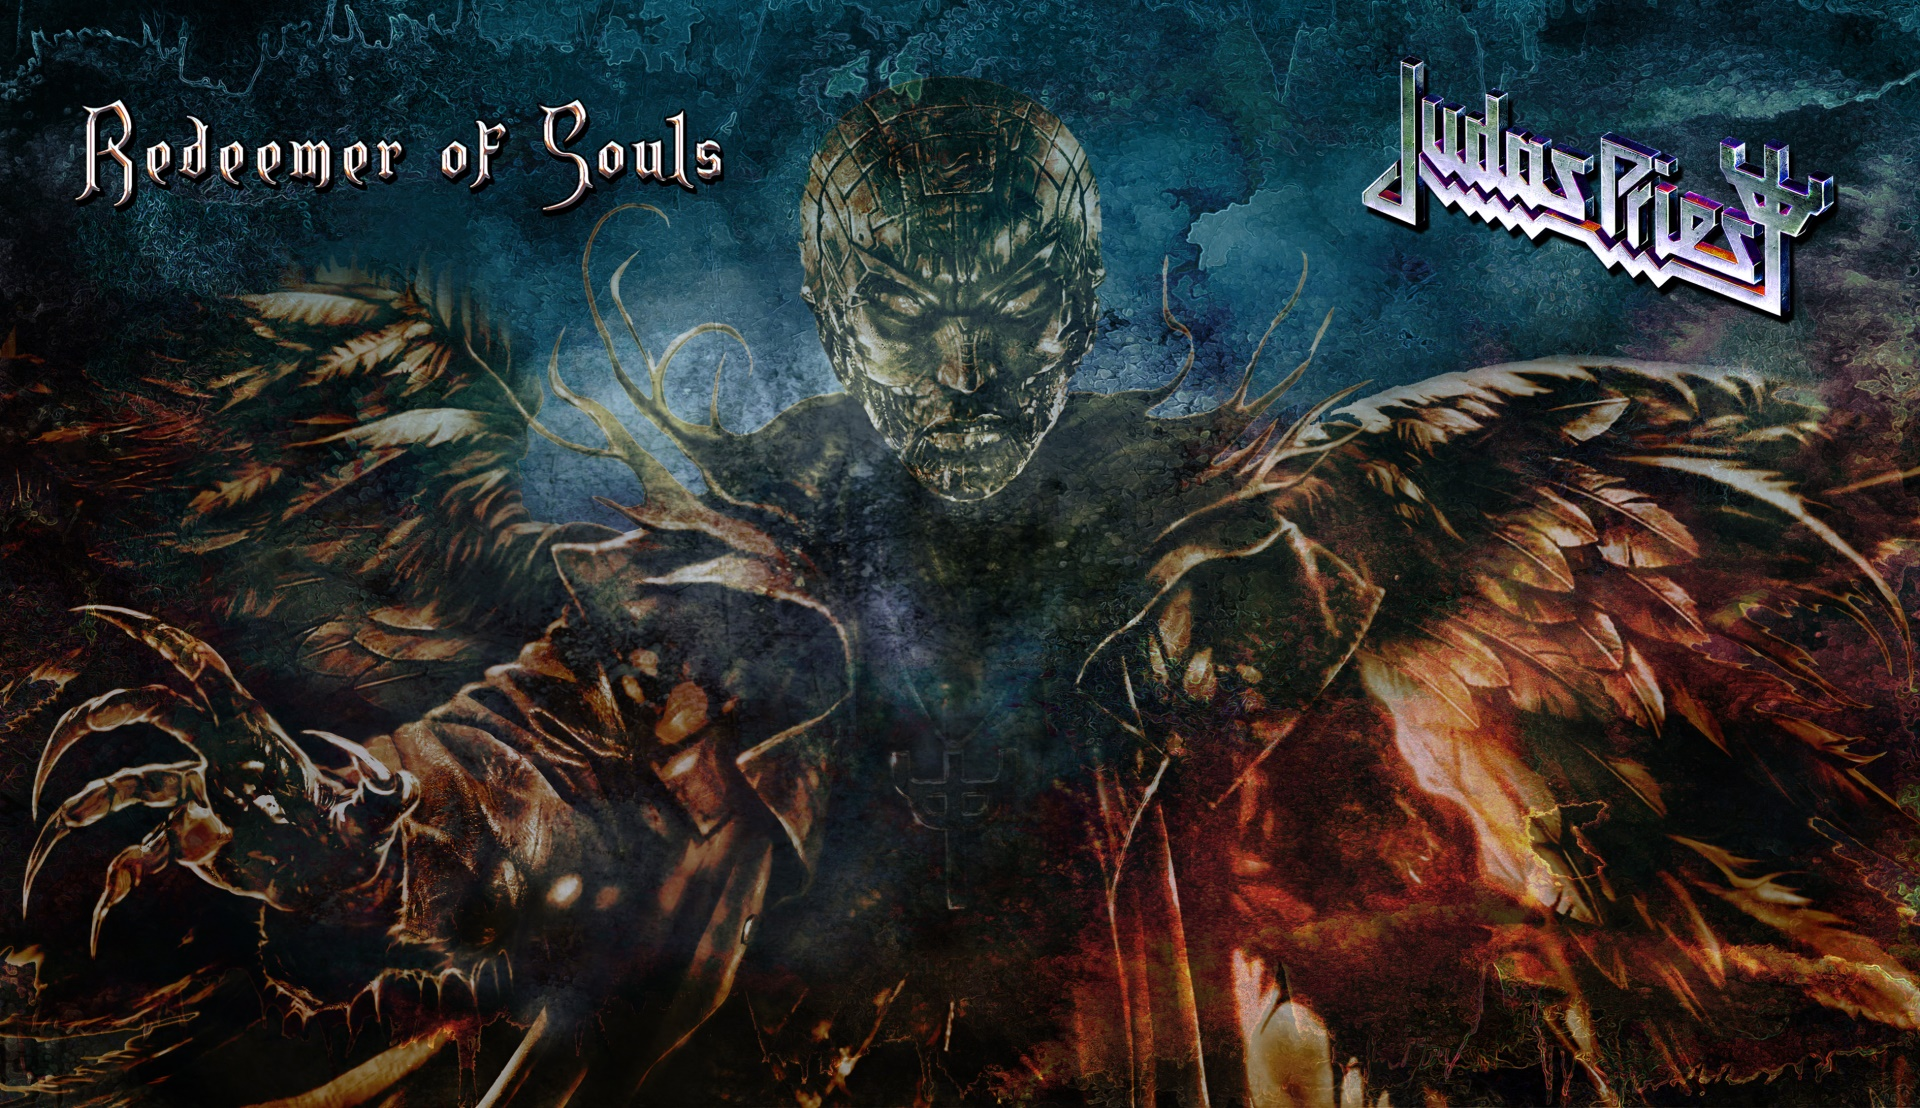 Redeemer of Souls Tour 2015 Judas Priest